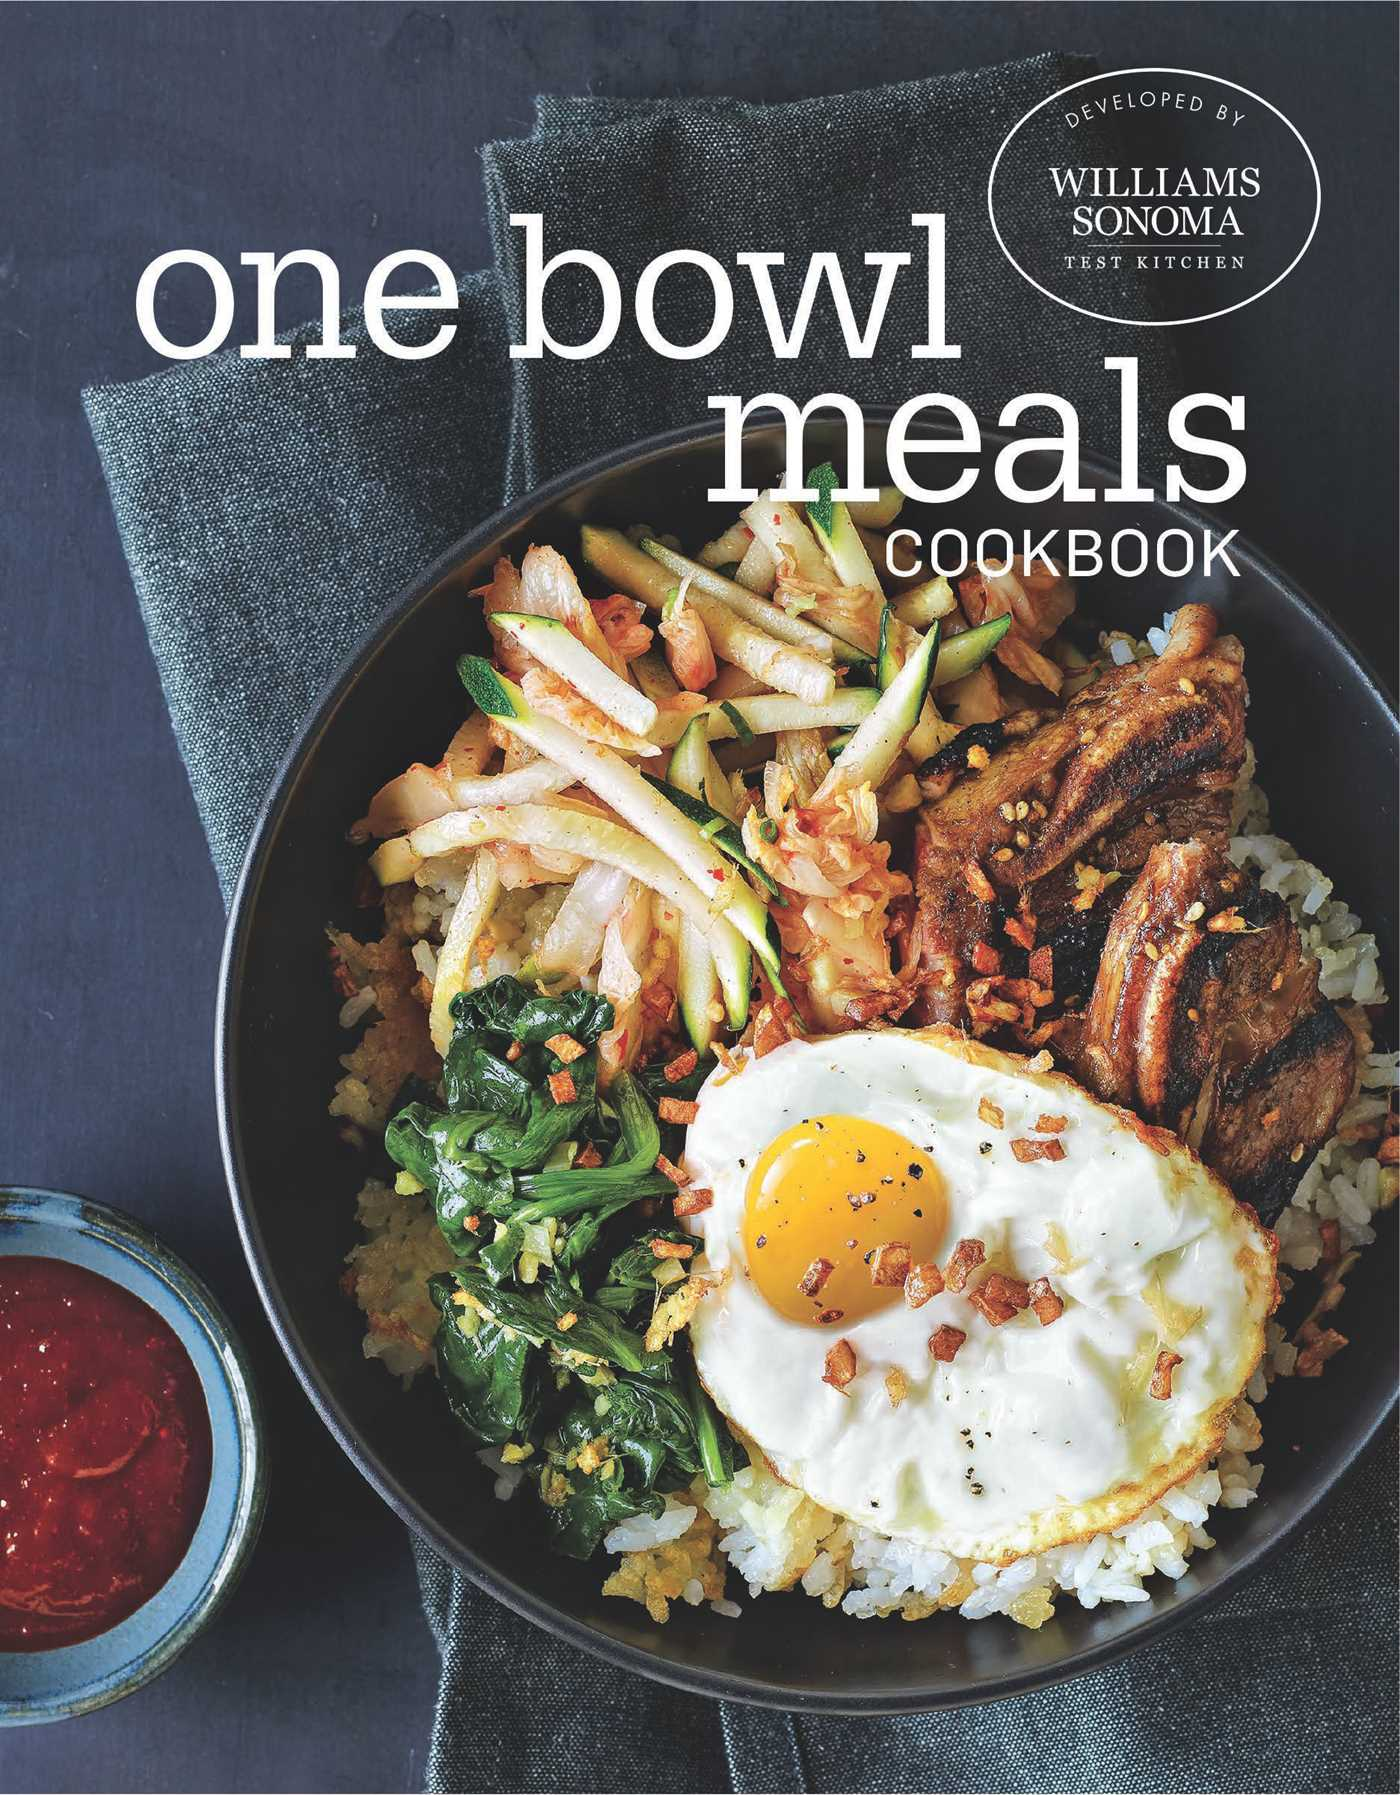 One bowl meals cookbook 9781681882451 hr